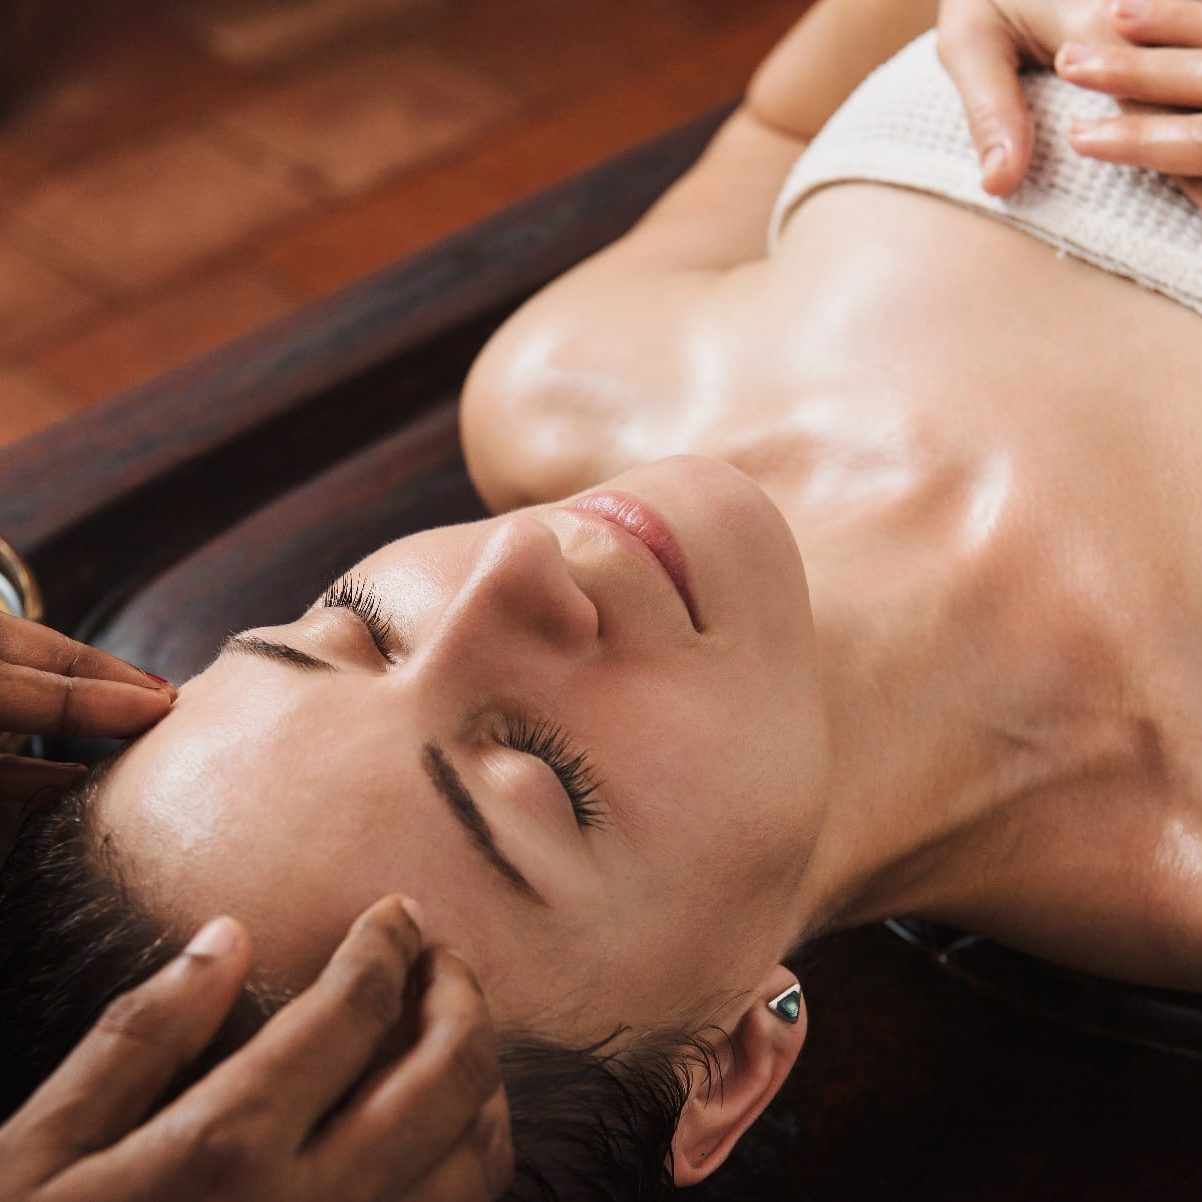 Ayurvedic face massage with oil on the wooden table in traditional style made by asian women.